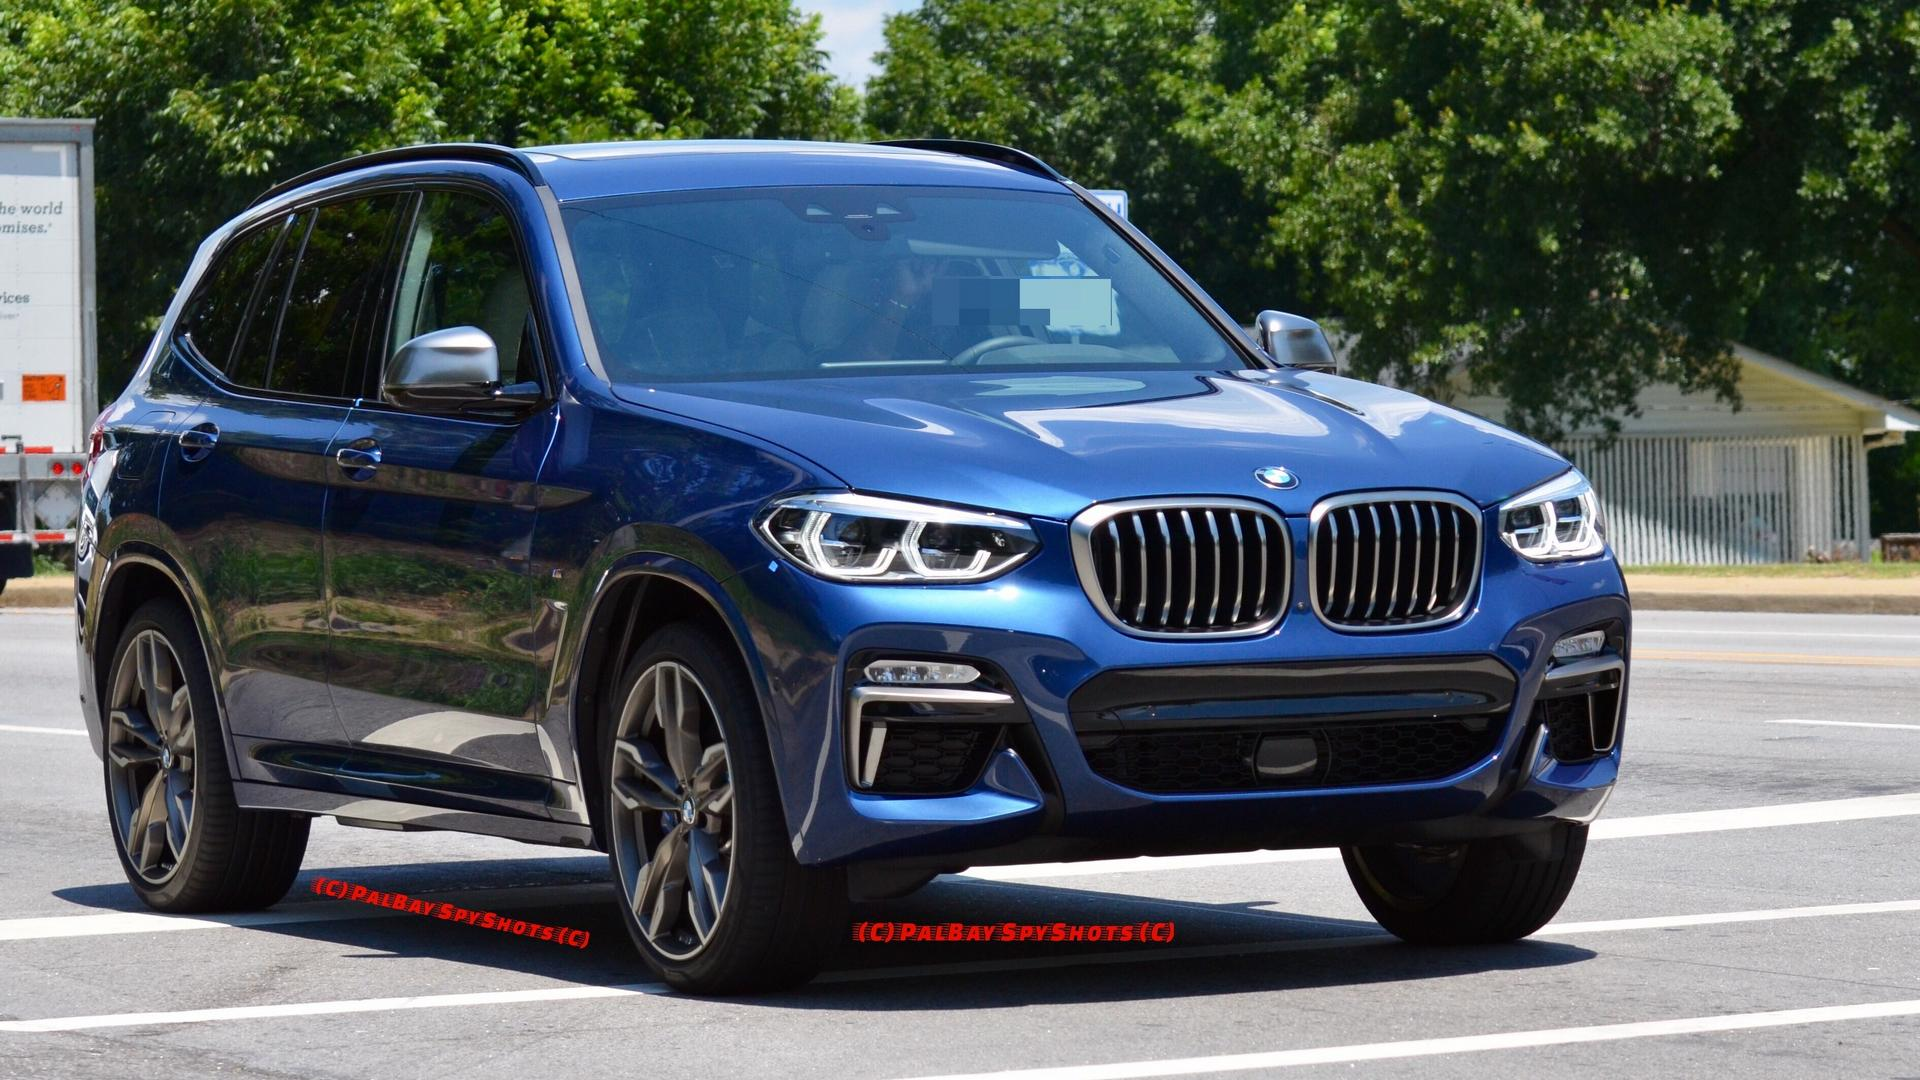 How Does The BMW X Mi Look In Real Life - Blue bmw x3